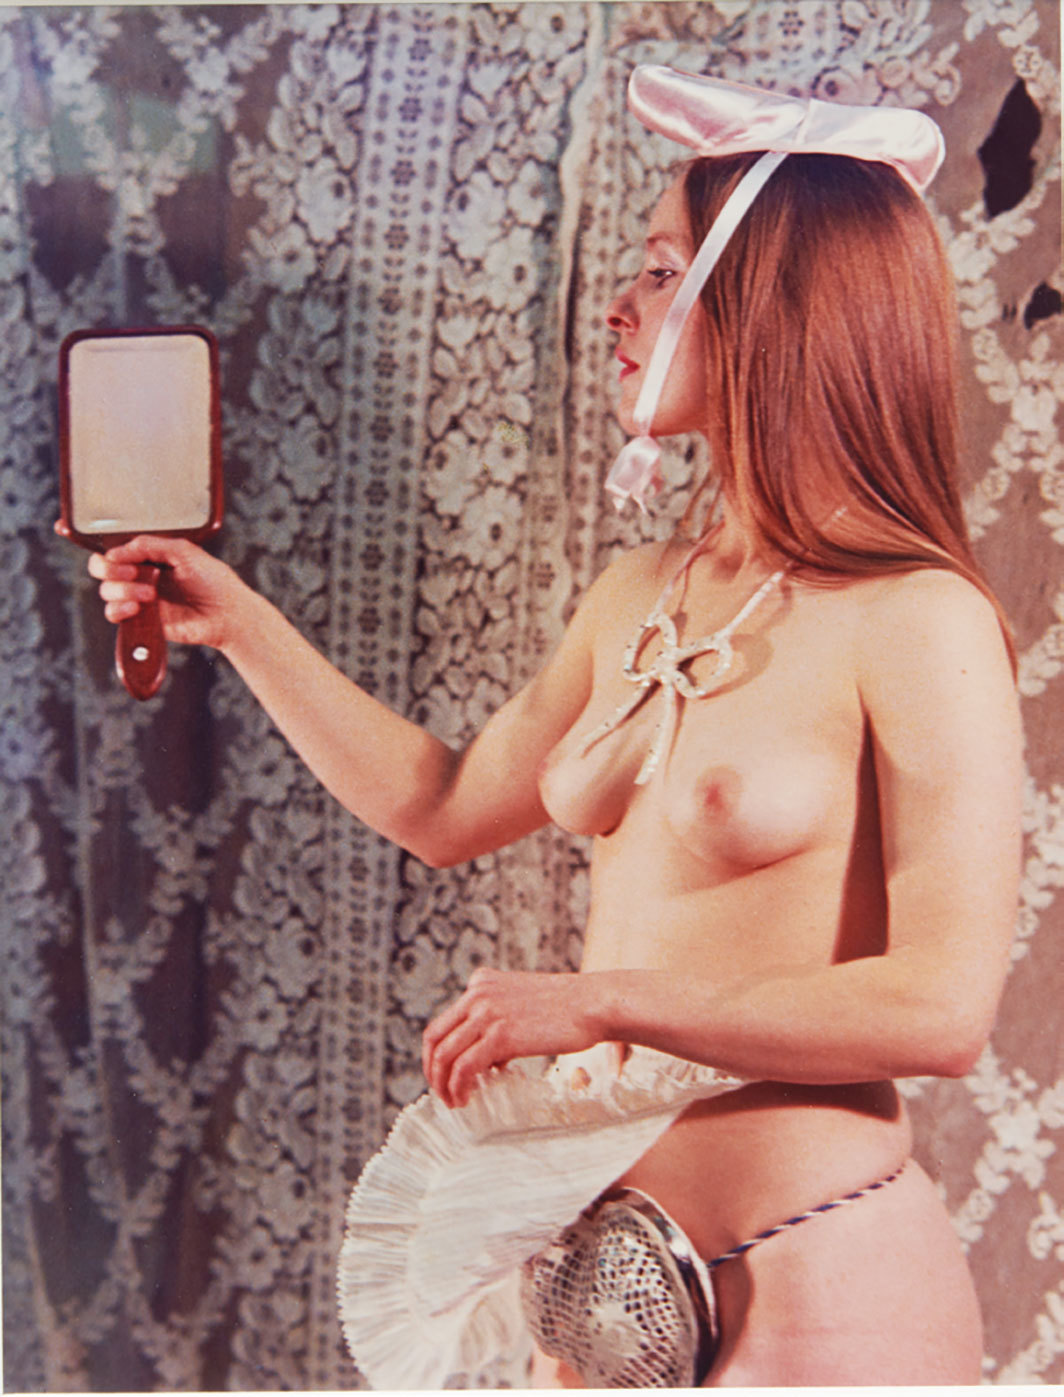 "Rose English, Study for a Divertissement: Jo and Porcelain Cache-Sexe, 1973, C-print, 10 1⁄4 × 7 7⁄8""."